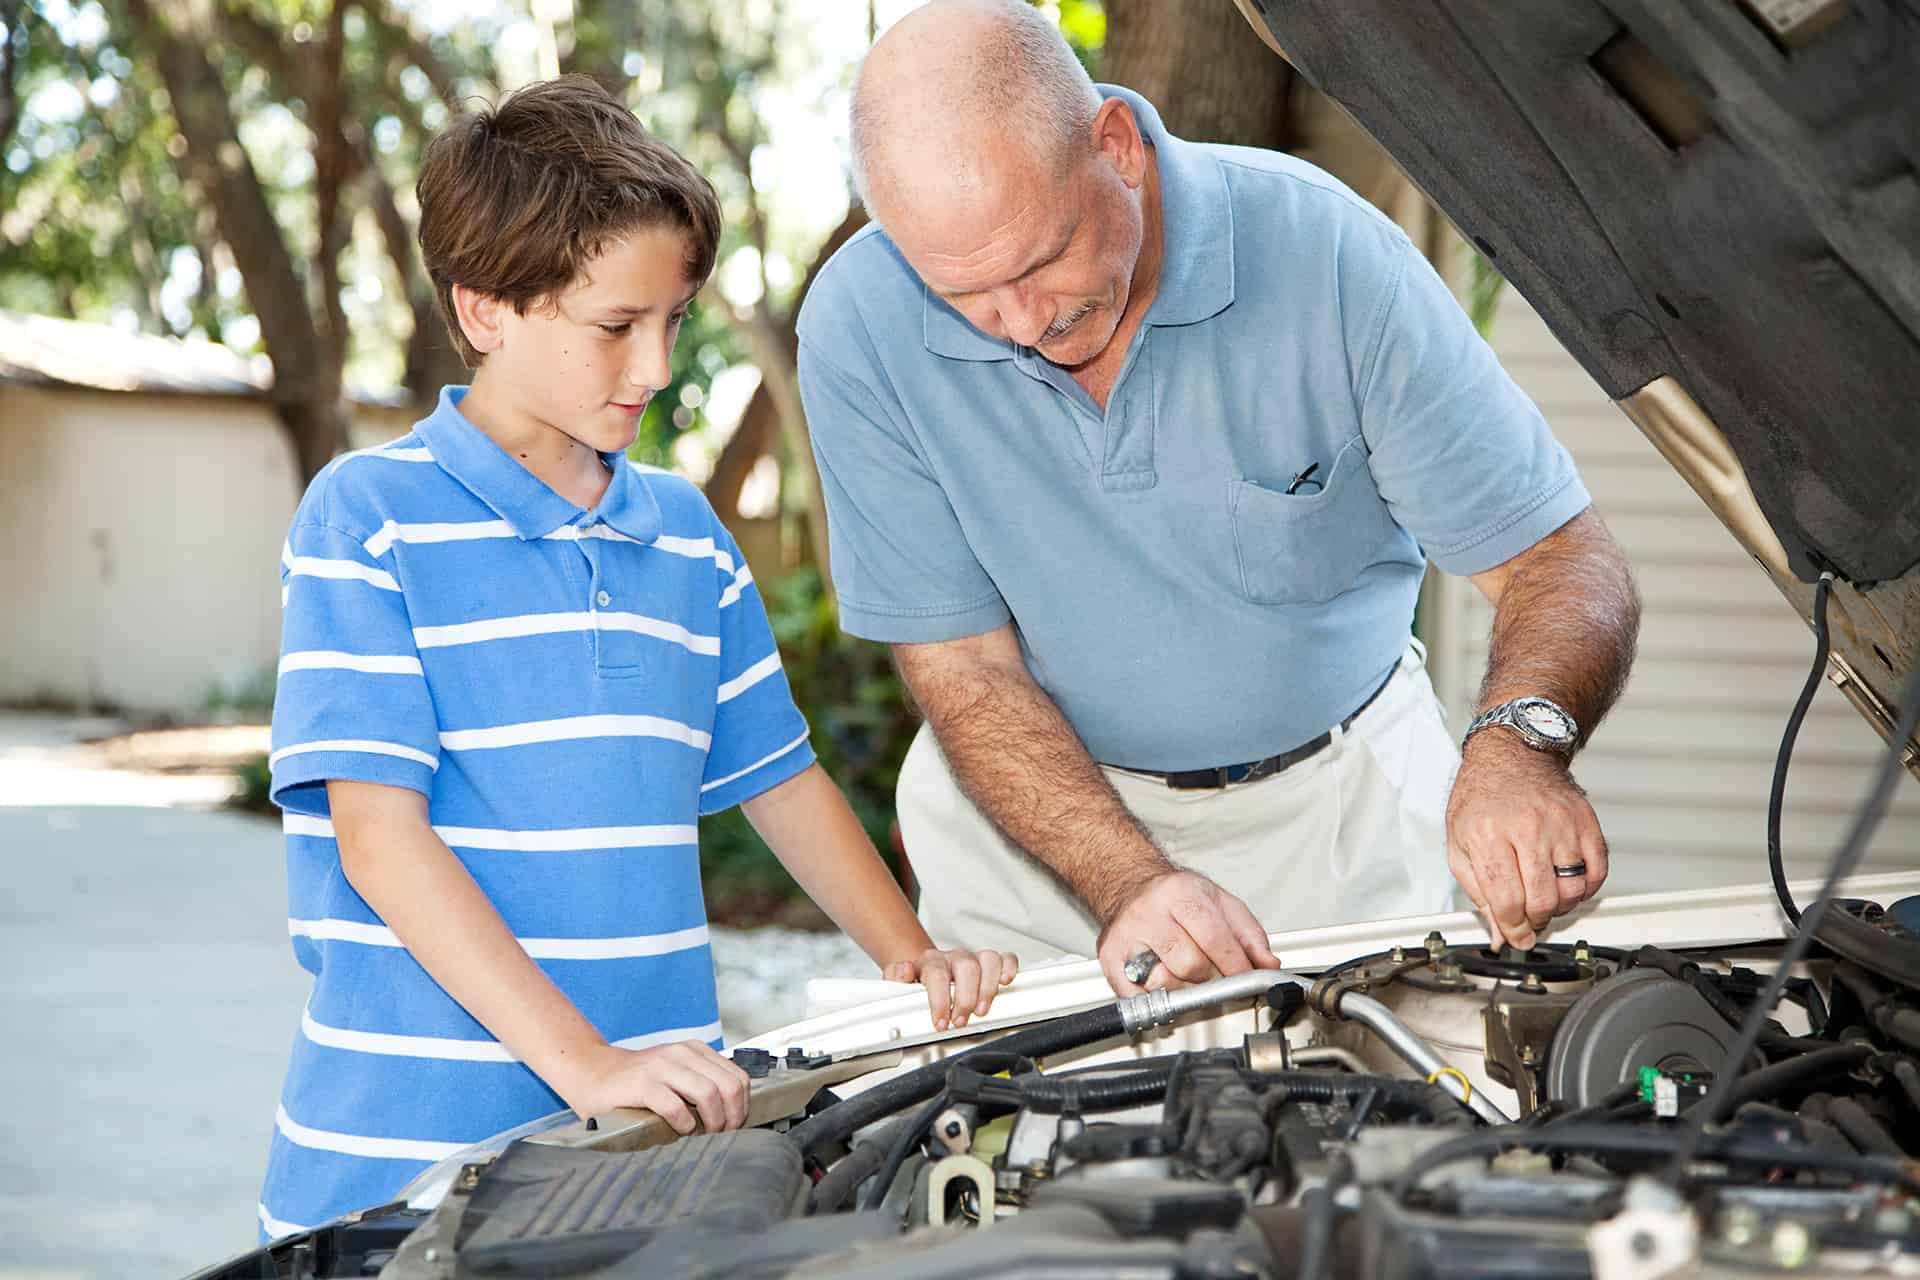 inspect and maintain your vehicle